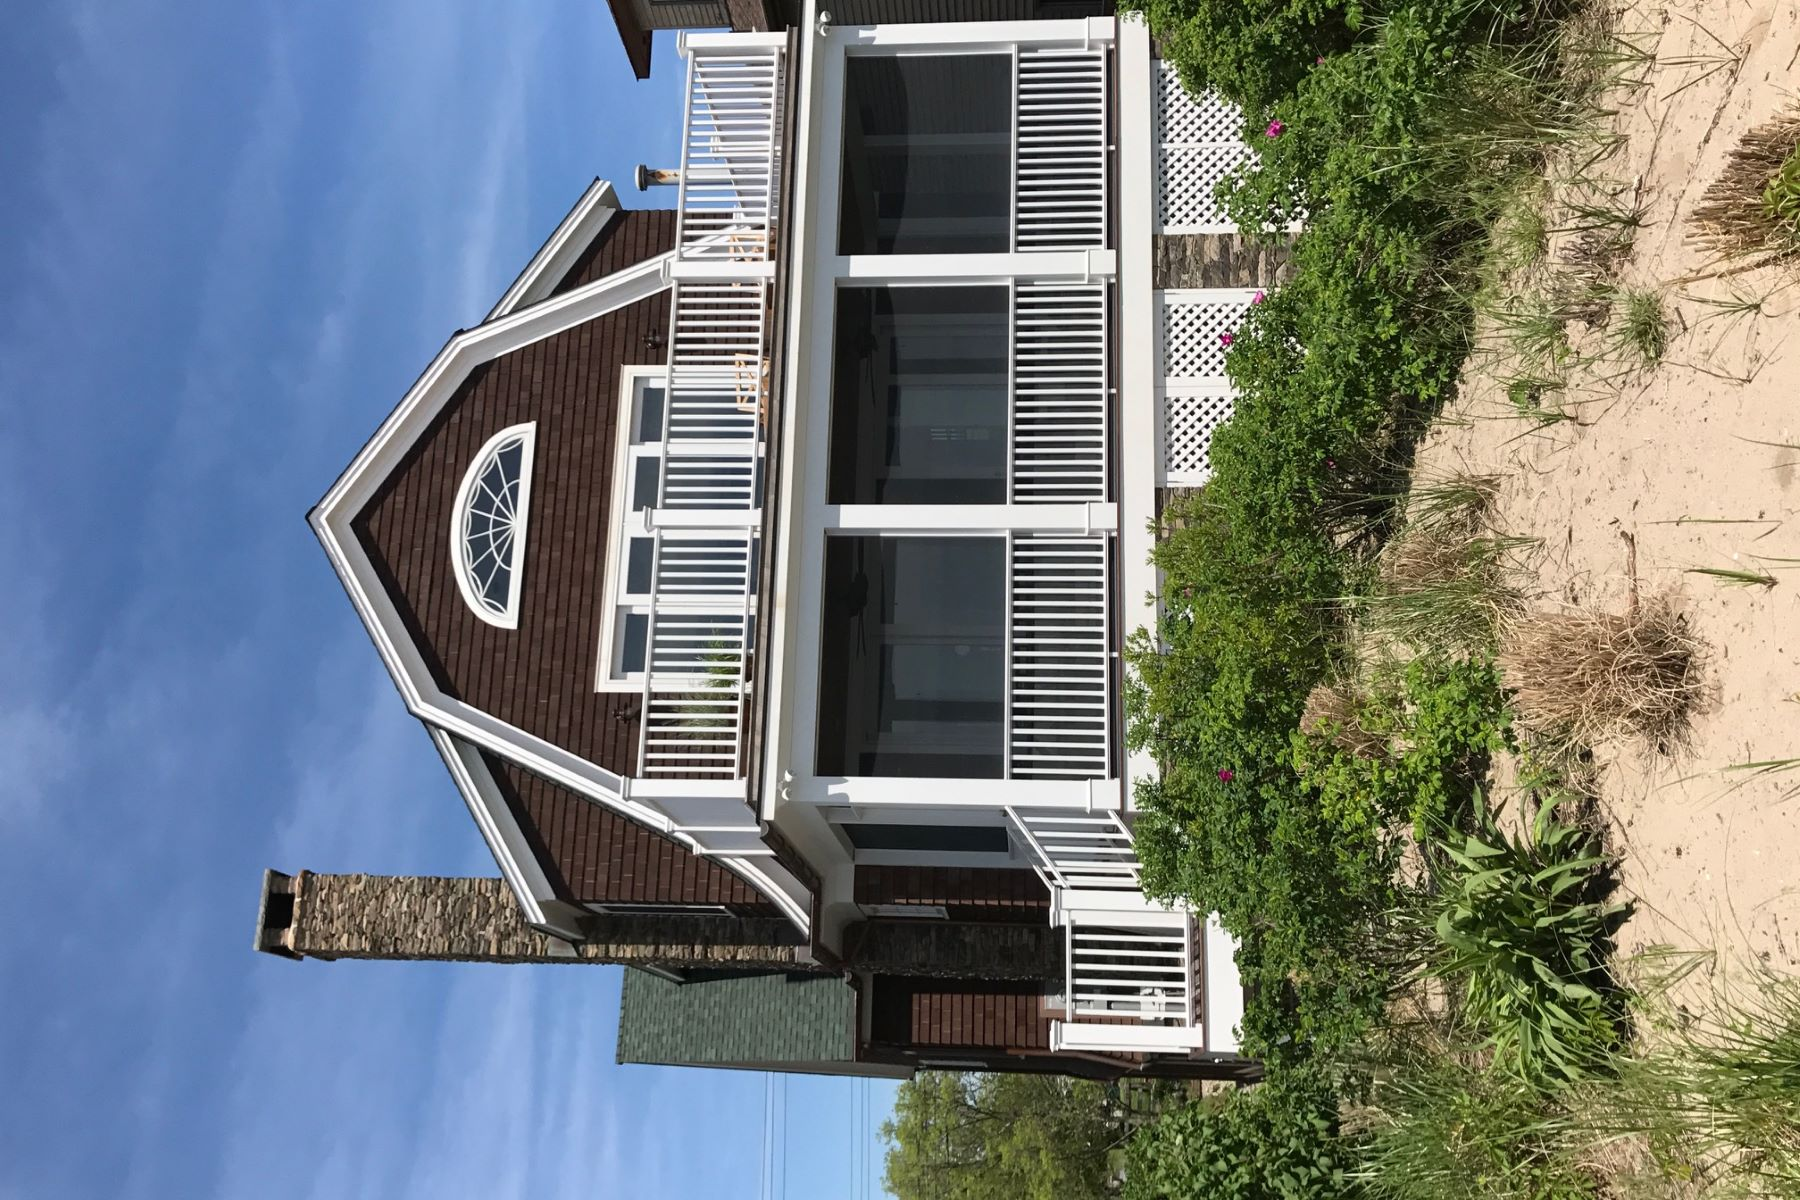 Maison unifamiliale pour l Vente à Nantucket on Fairfield Beach 1445 Fairfield Beach Road Fairfield, Connecticut 06824 États-Unis